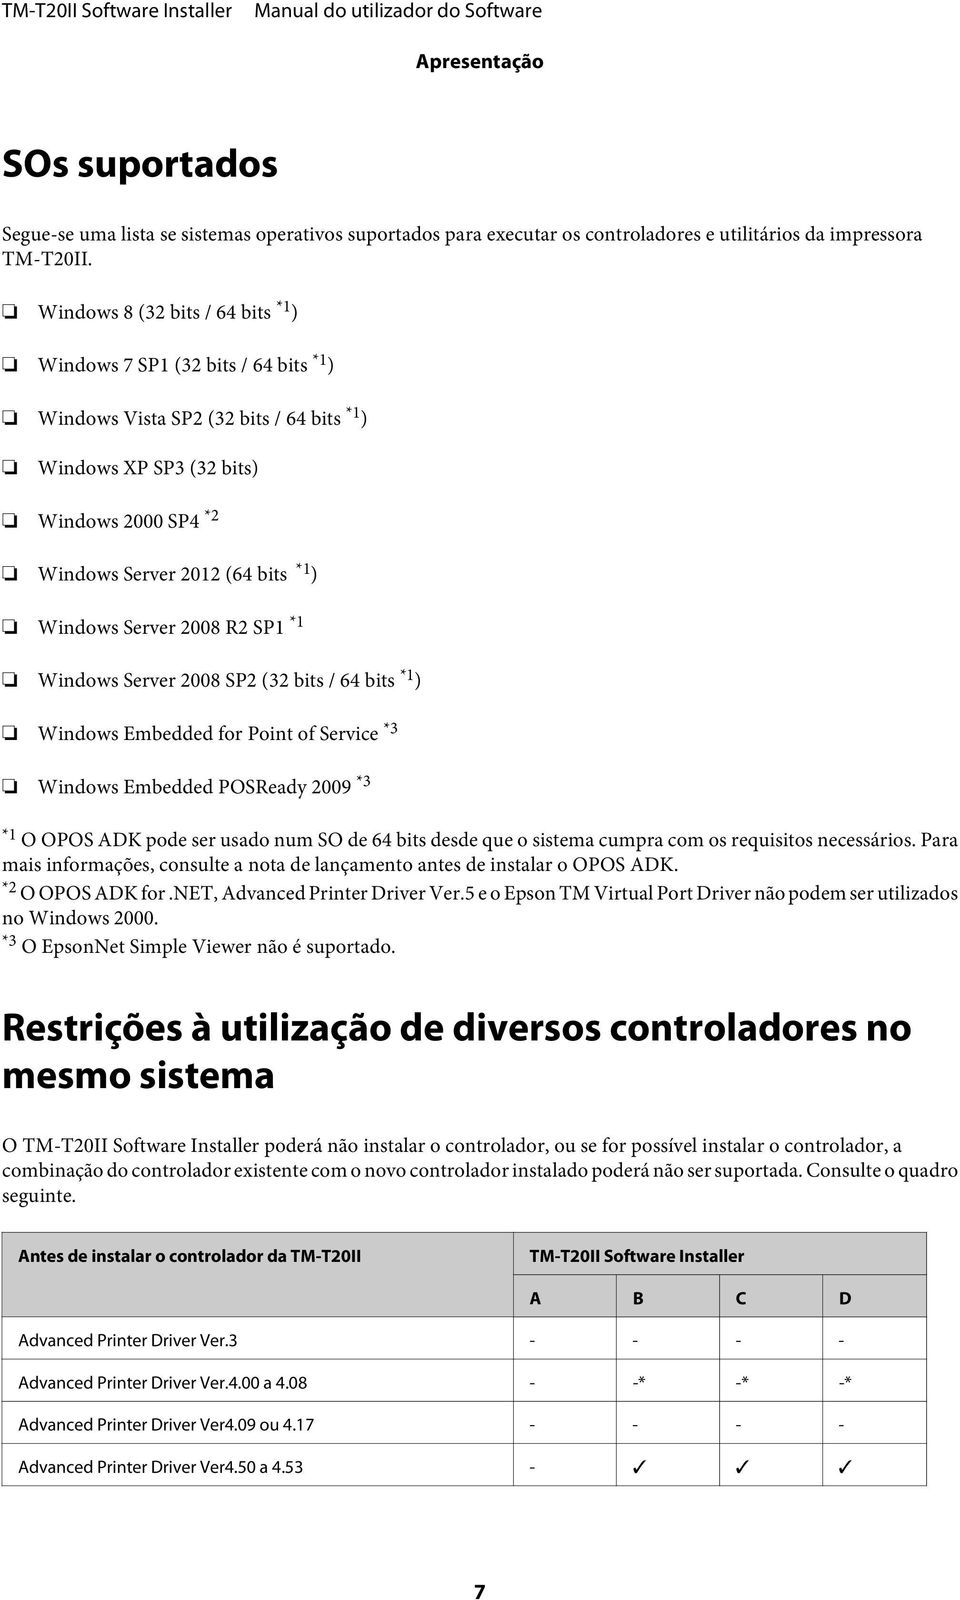 Windows Server 2008 R2 SP1 *1 Windows Server 2008 SP2 (32 bits / 64 bits *1 ) Windows Embedded for Point of Service *3 Windows Embedded POSReady 2009 *3 *1 O OPOS ADK pode ser usado num SO de 64 bits